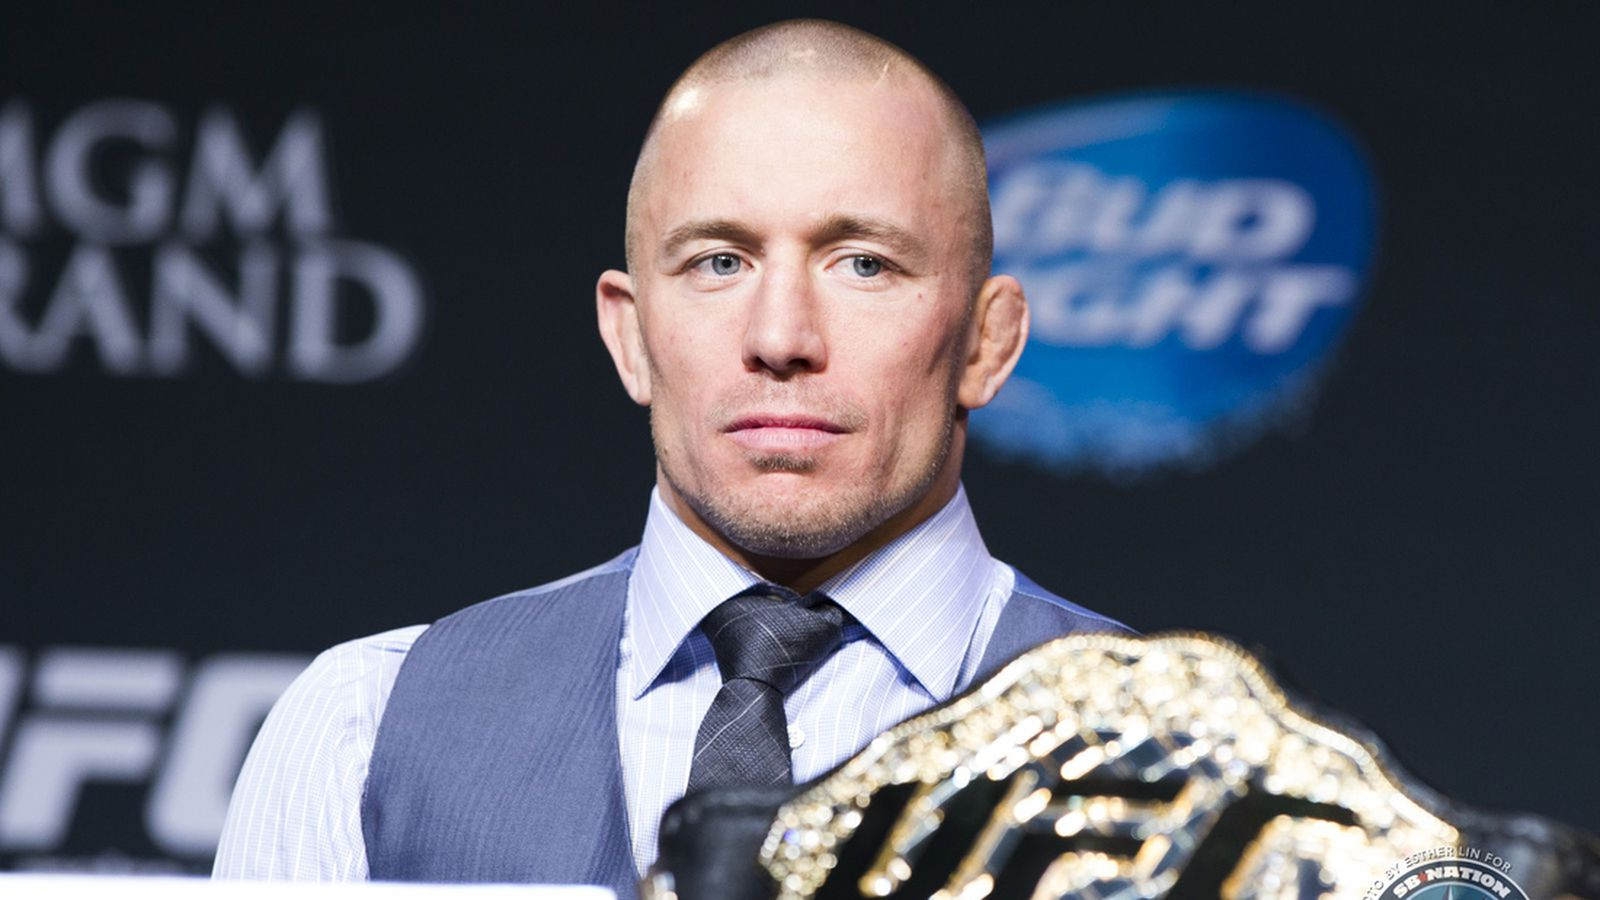 Dana White responds to Georges St-Pierre vs. Anderson Silva fight rumored for UFC 206